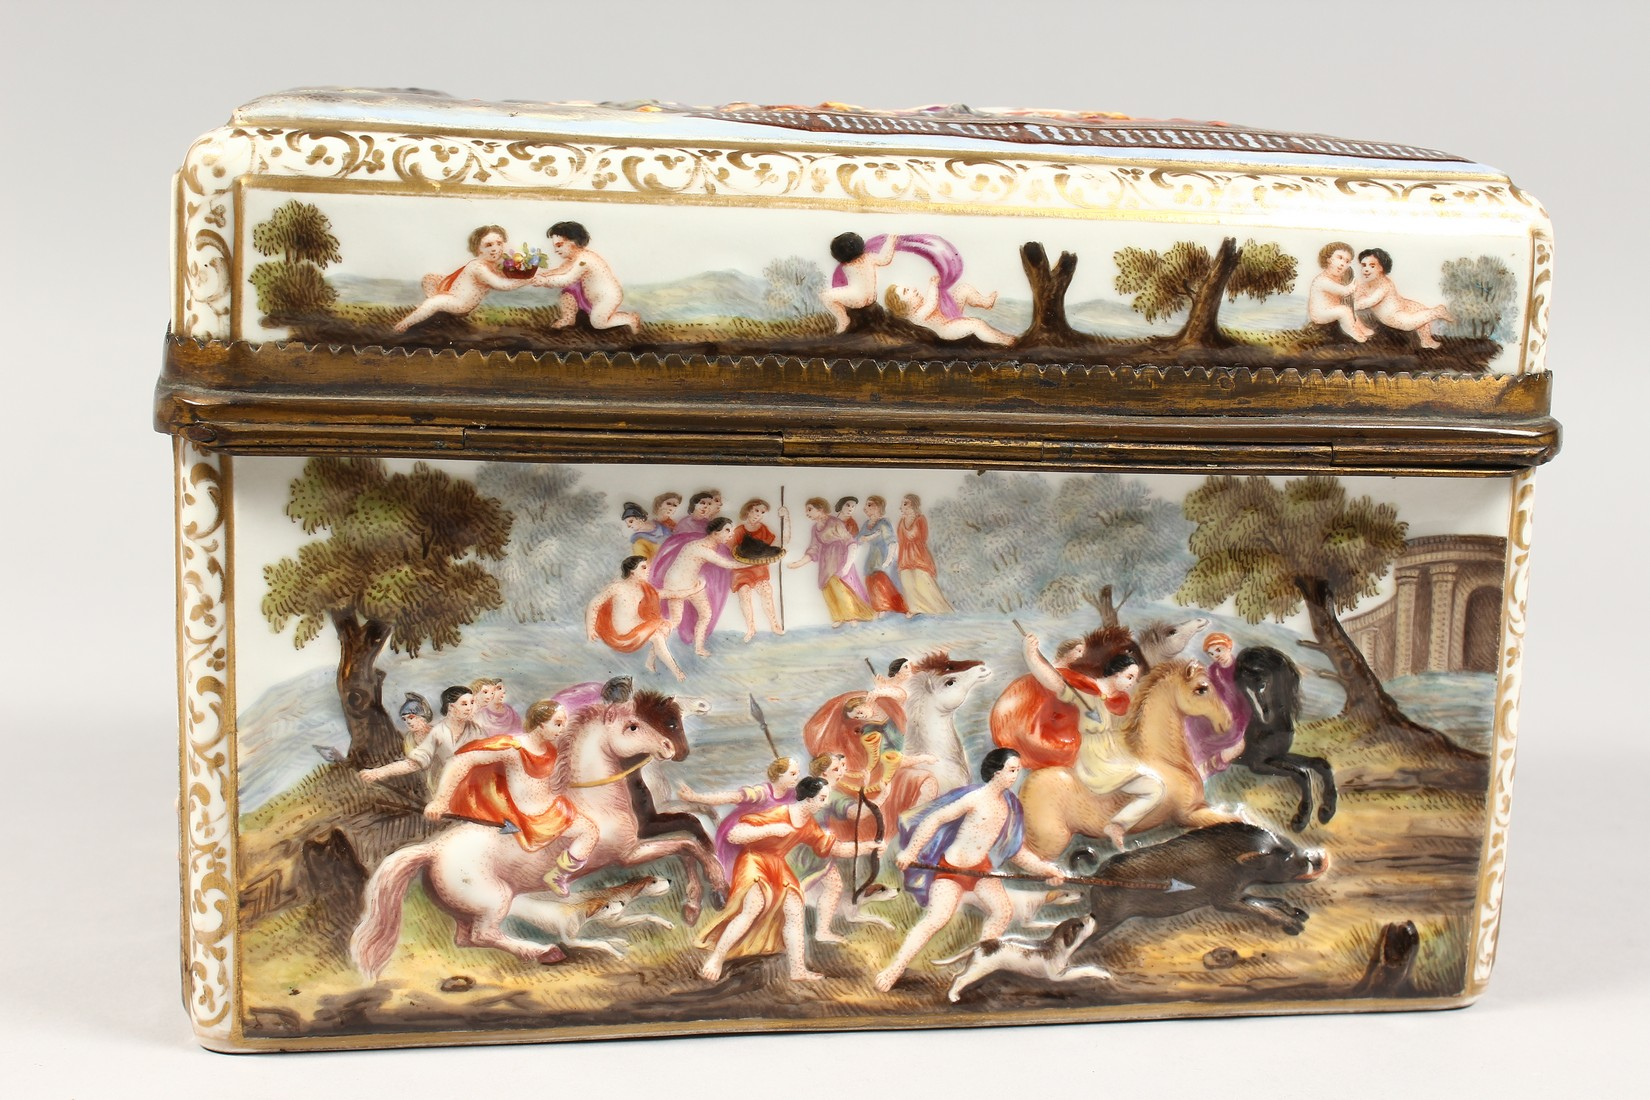 A GOOD CAPODIMONTE CASKET with classical figures in relief 9.5 ins wide. - Image 4 of 8